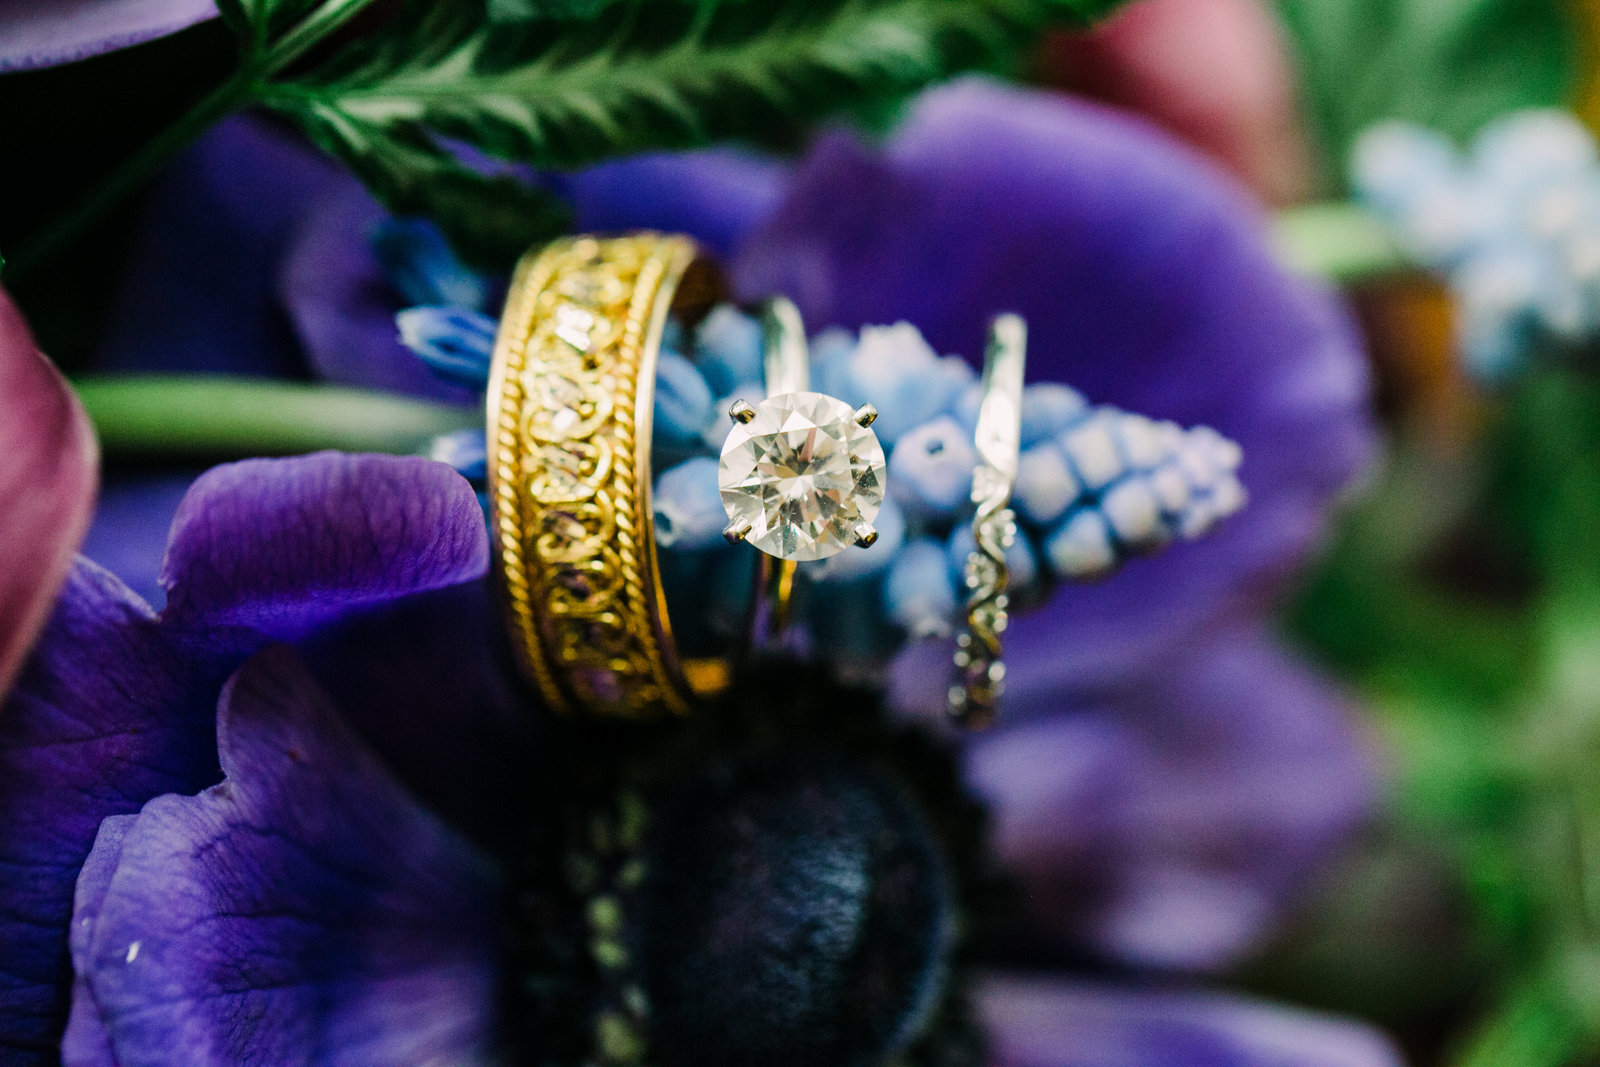 This is a detail photo of wedding rings on a blue and purple flower